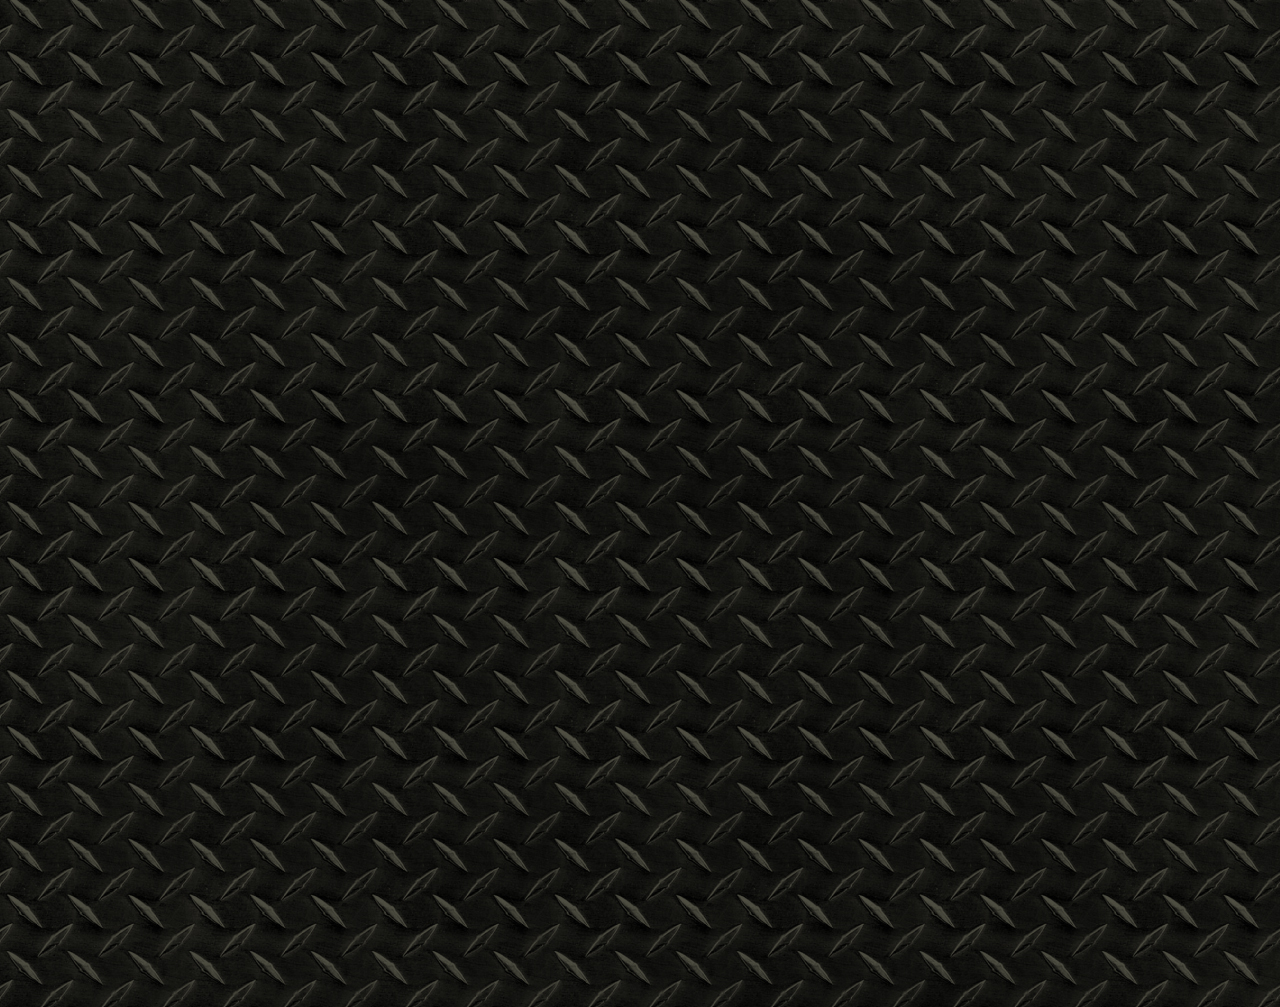 . PlusPng.com black-diamond-plate-copy.jpg PlusPng.com  - Diamond Plate PNG HD